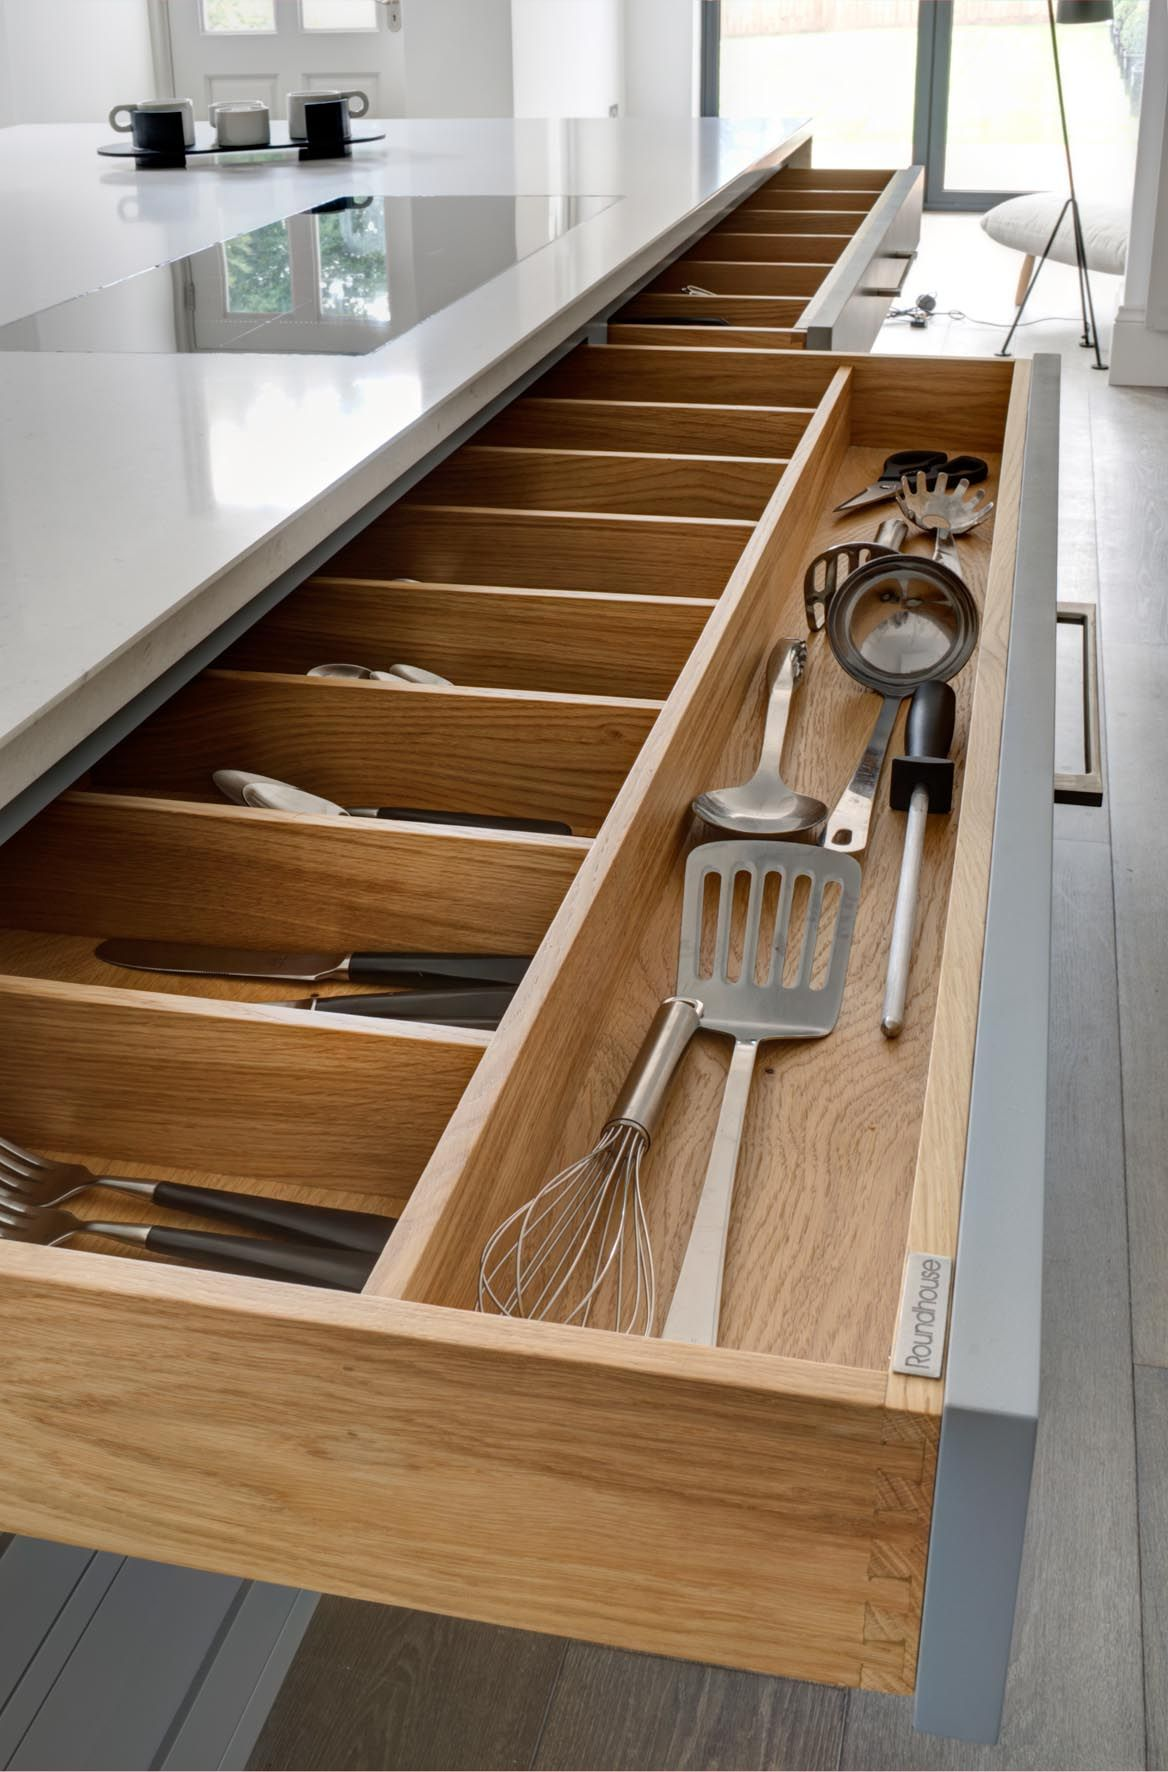 Custom Made Drawer Dividers By Roundhouse Design Helping To Keep Your Kitchenware Organised Round House Kitchen Design Divider Design